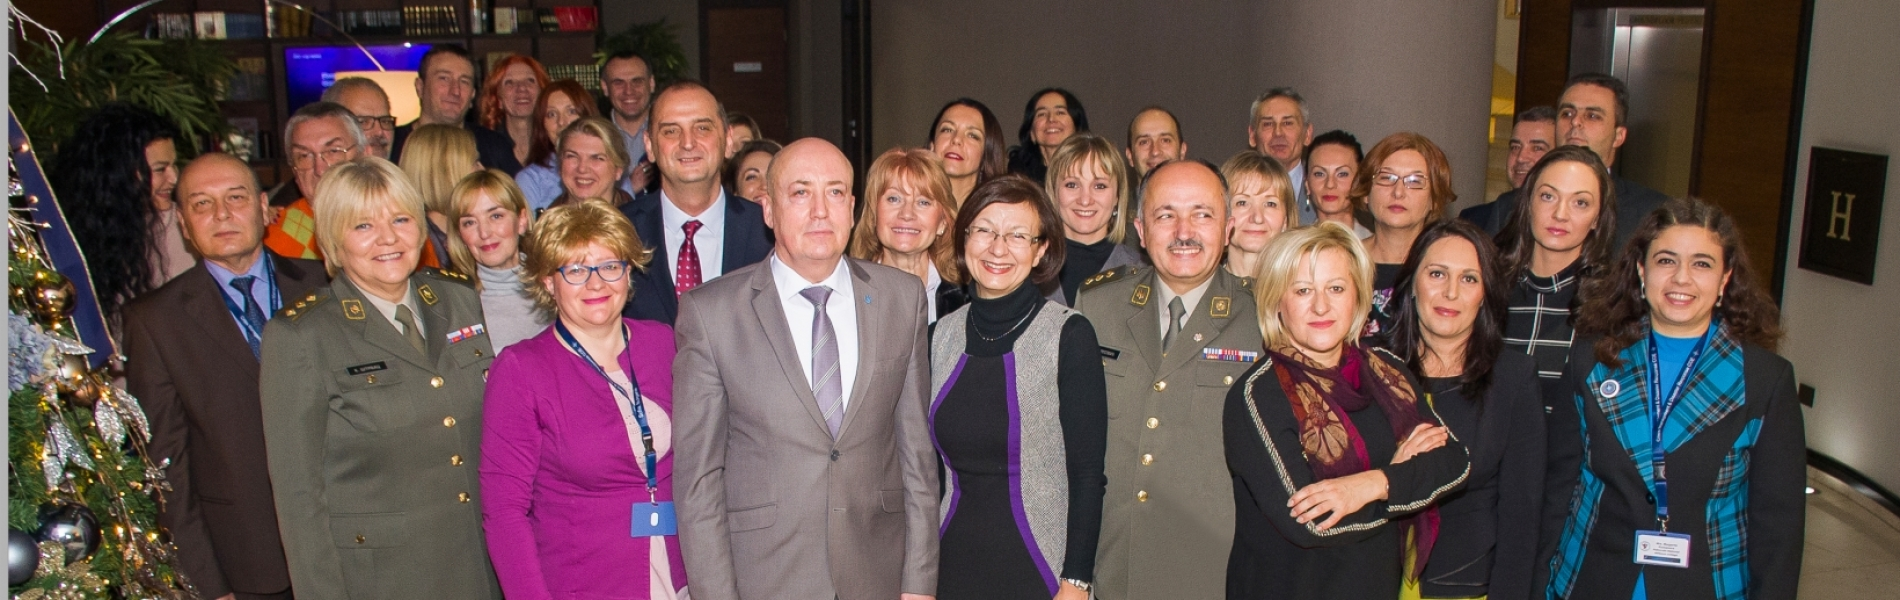 STRESS MANAGEMENT AND RESILIENCE TRAINING COURSE WAS SUCCESSFULLY CONDUCTED IN BELGRADE